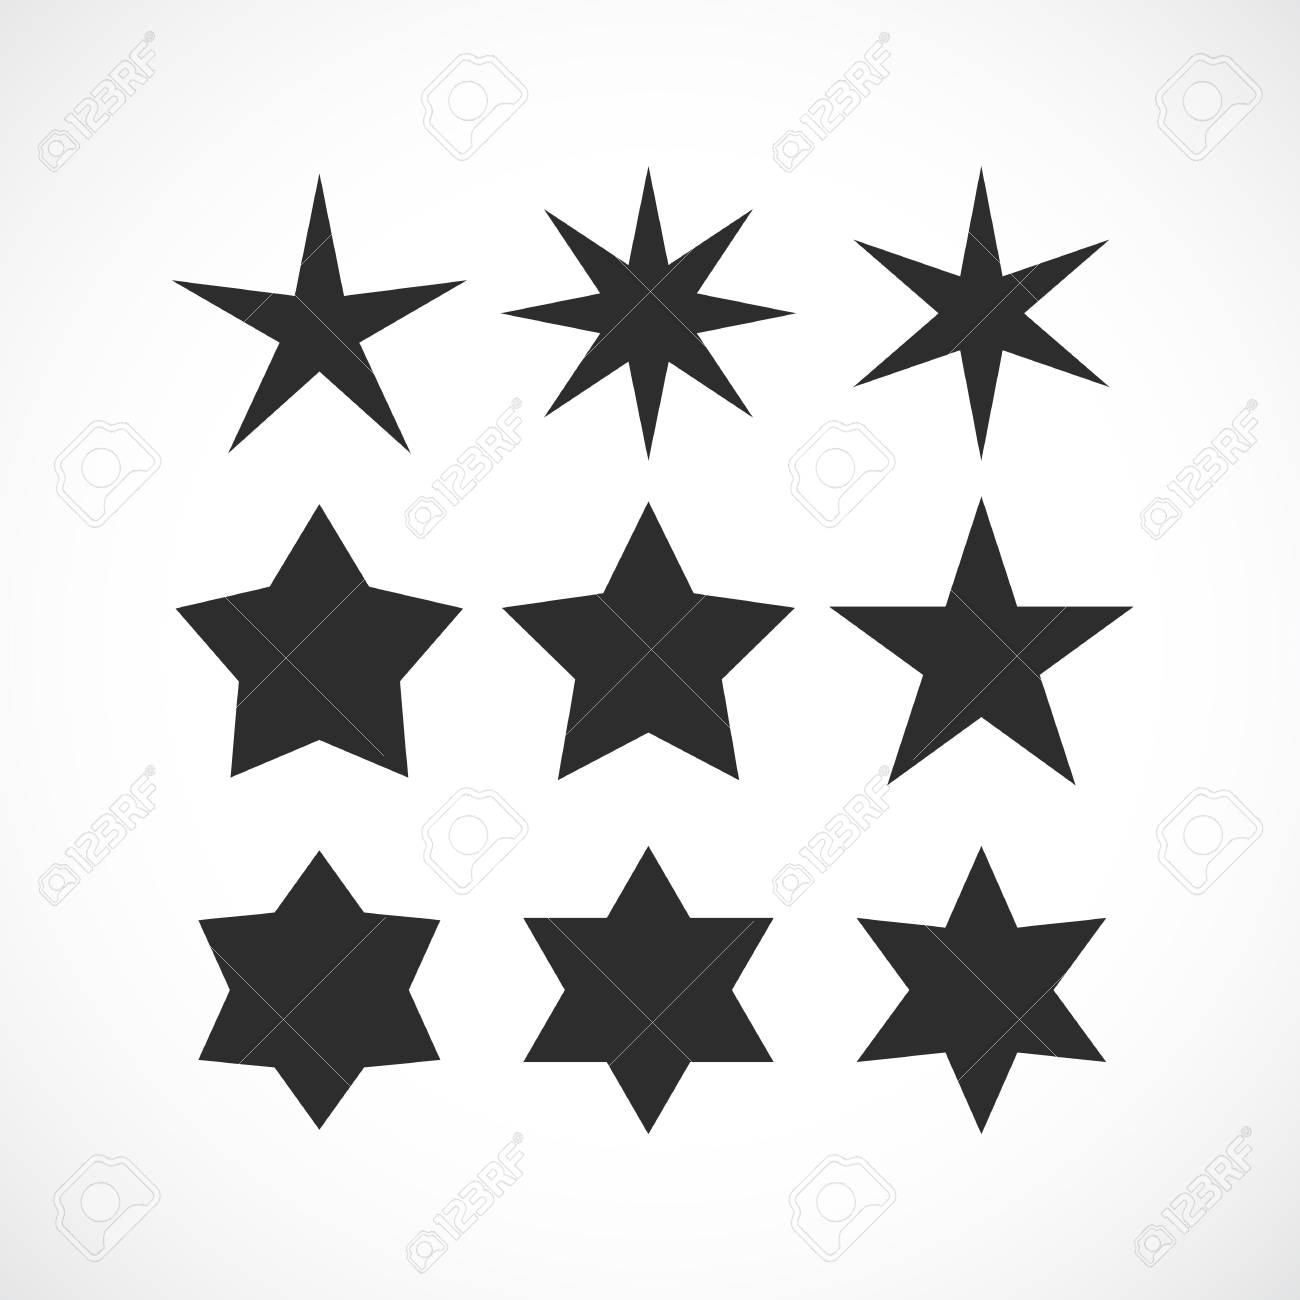 Green Star Basic Simple Shapes Isolated On White Background,.. Royalty Free  Cliparts, Vectors, And Stock Illustration. Image 121202509.